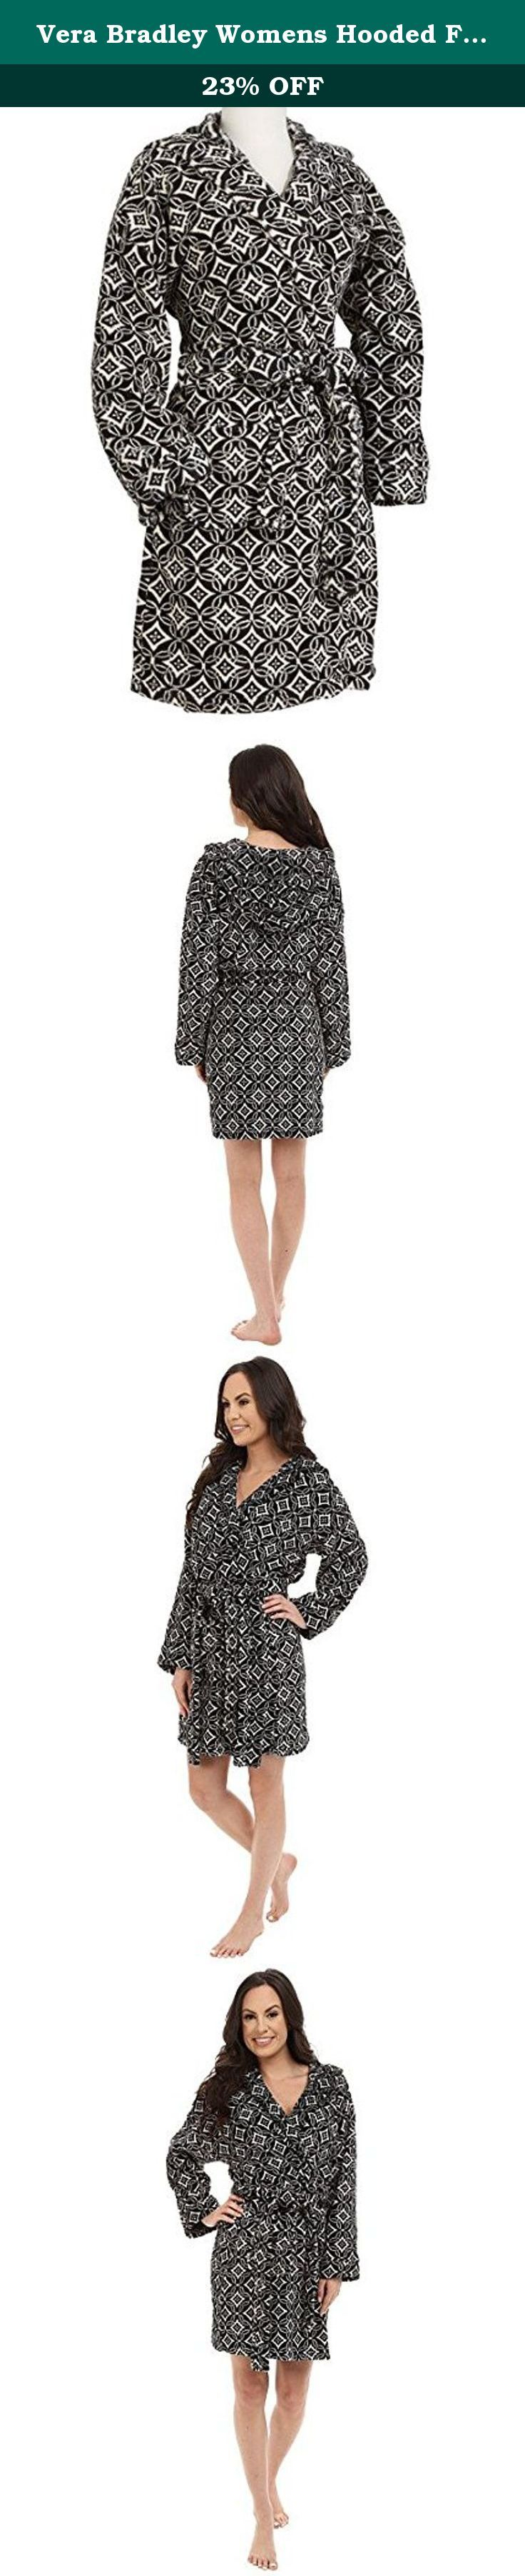 Vera Bradley Womens Hooded Fleece Robe Concerto Robe SM/MD. We added a cozy hood to our 100% microfleece robe. Featuring an allover Signature print, this supersoft robe has convenient patch pockets and a tie belt for an always perfect fit. Pair it with a matching pair of Slipper Booties or Fleece Slippers for a complete and comfy look. Details & Care Tips Details 100% microfleece Allover Signature print Above-the-knee length Patch pockets Tie belt with two belt loops Interior anchor tie…